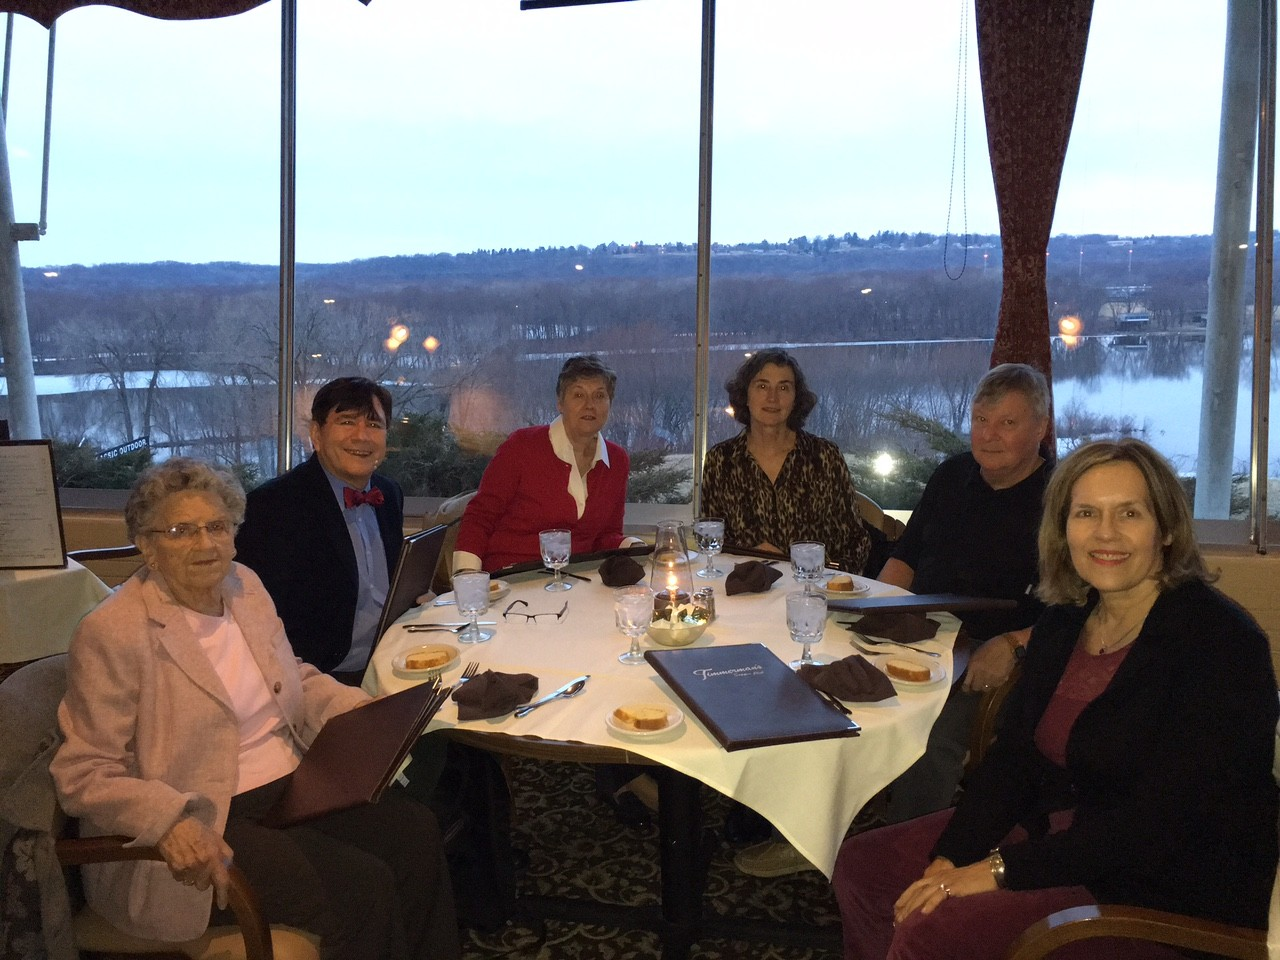 Mary Lou, John, Cindy Wagner, Ann & John Ackerman, Lorraine Gudas at Timmerman's Supper Club, Dubuque Iowa...Mississippi  River in bkground